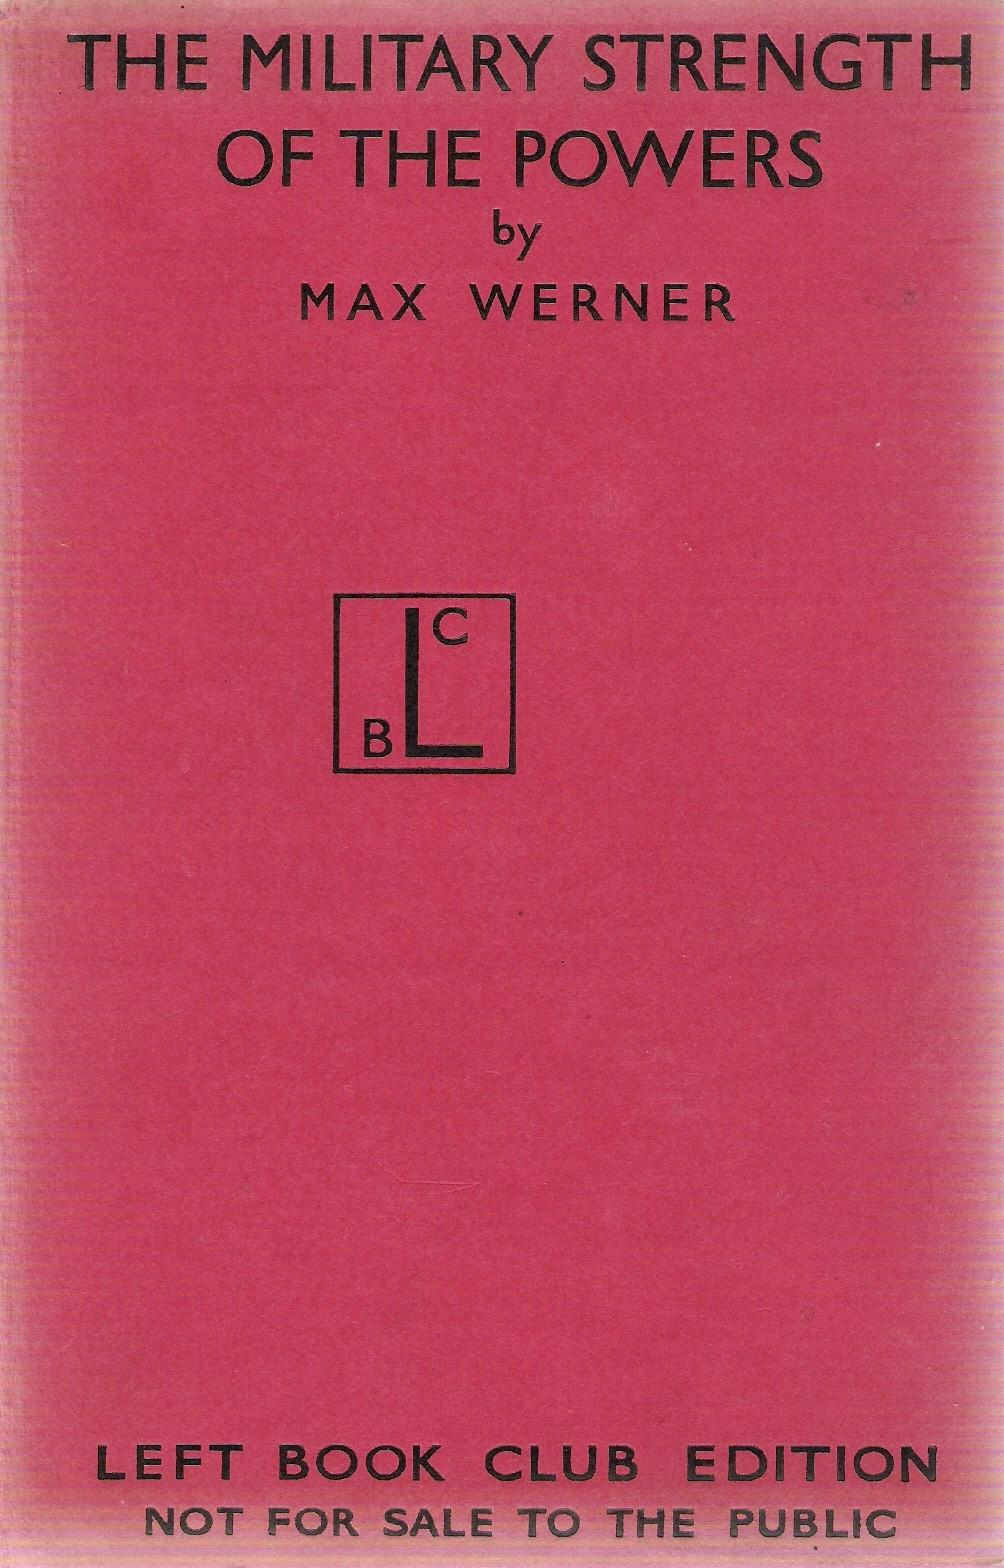 Book: 'The Military Strength of the Powers' by Max Werner, 1939